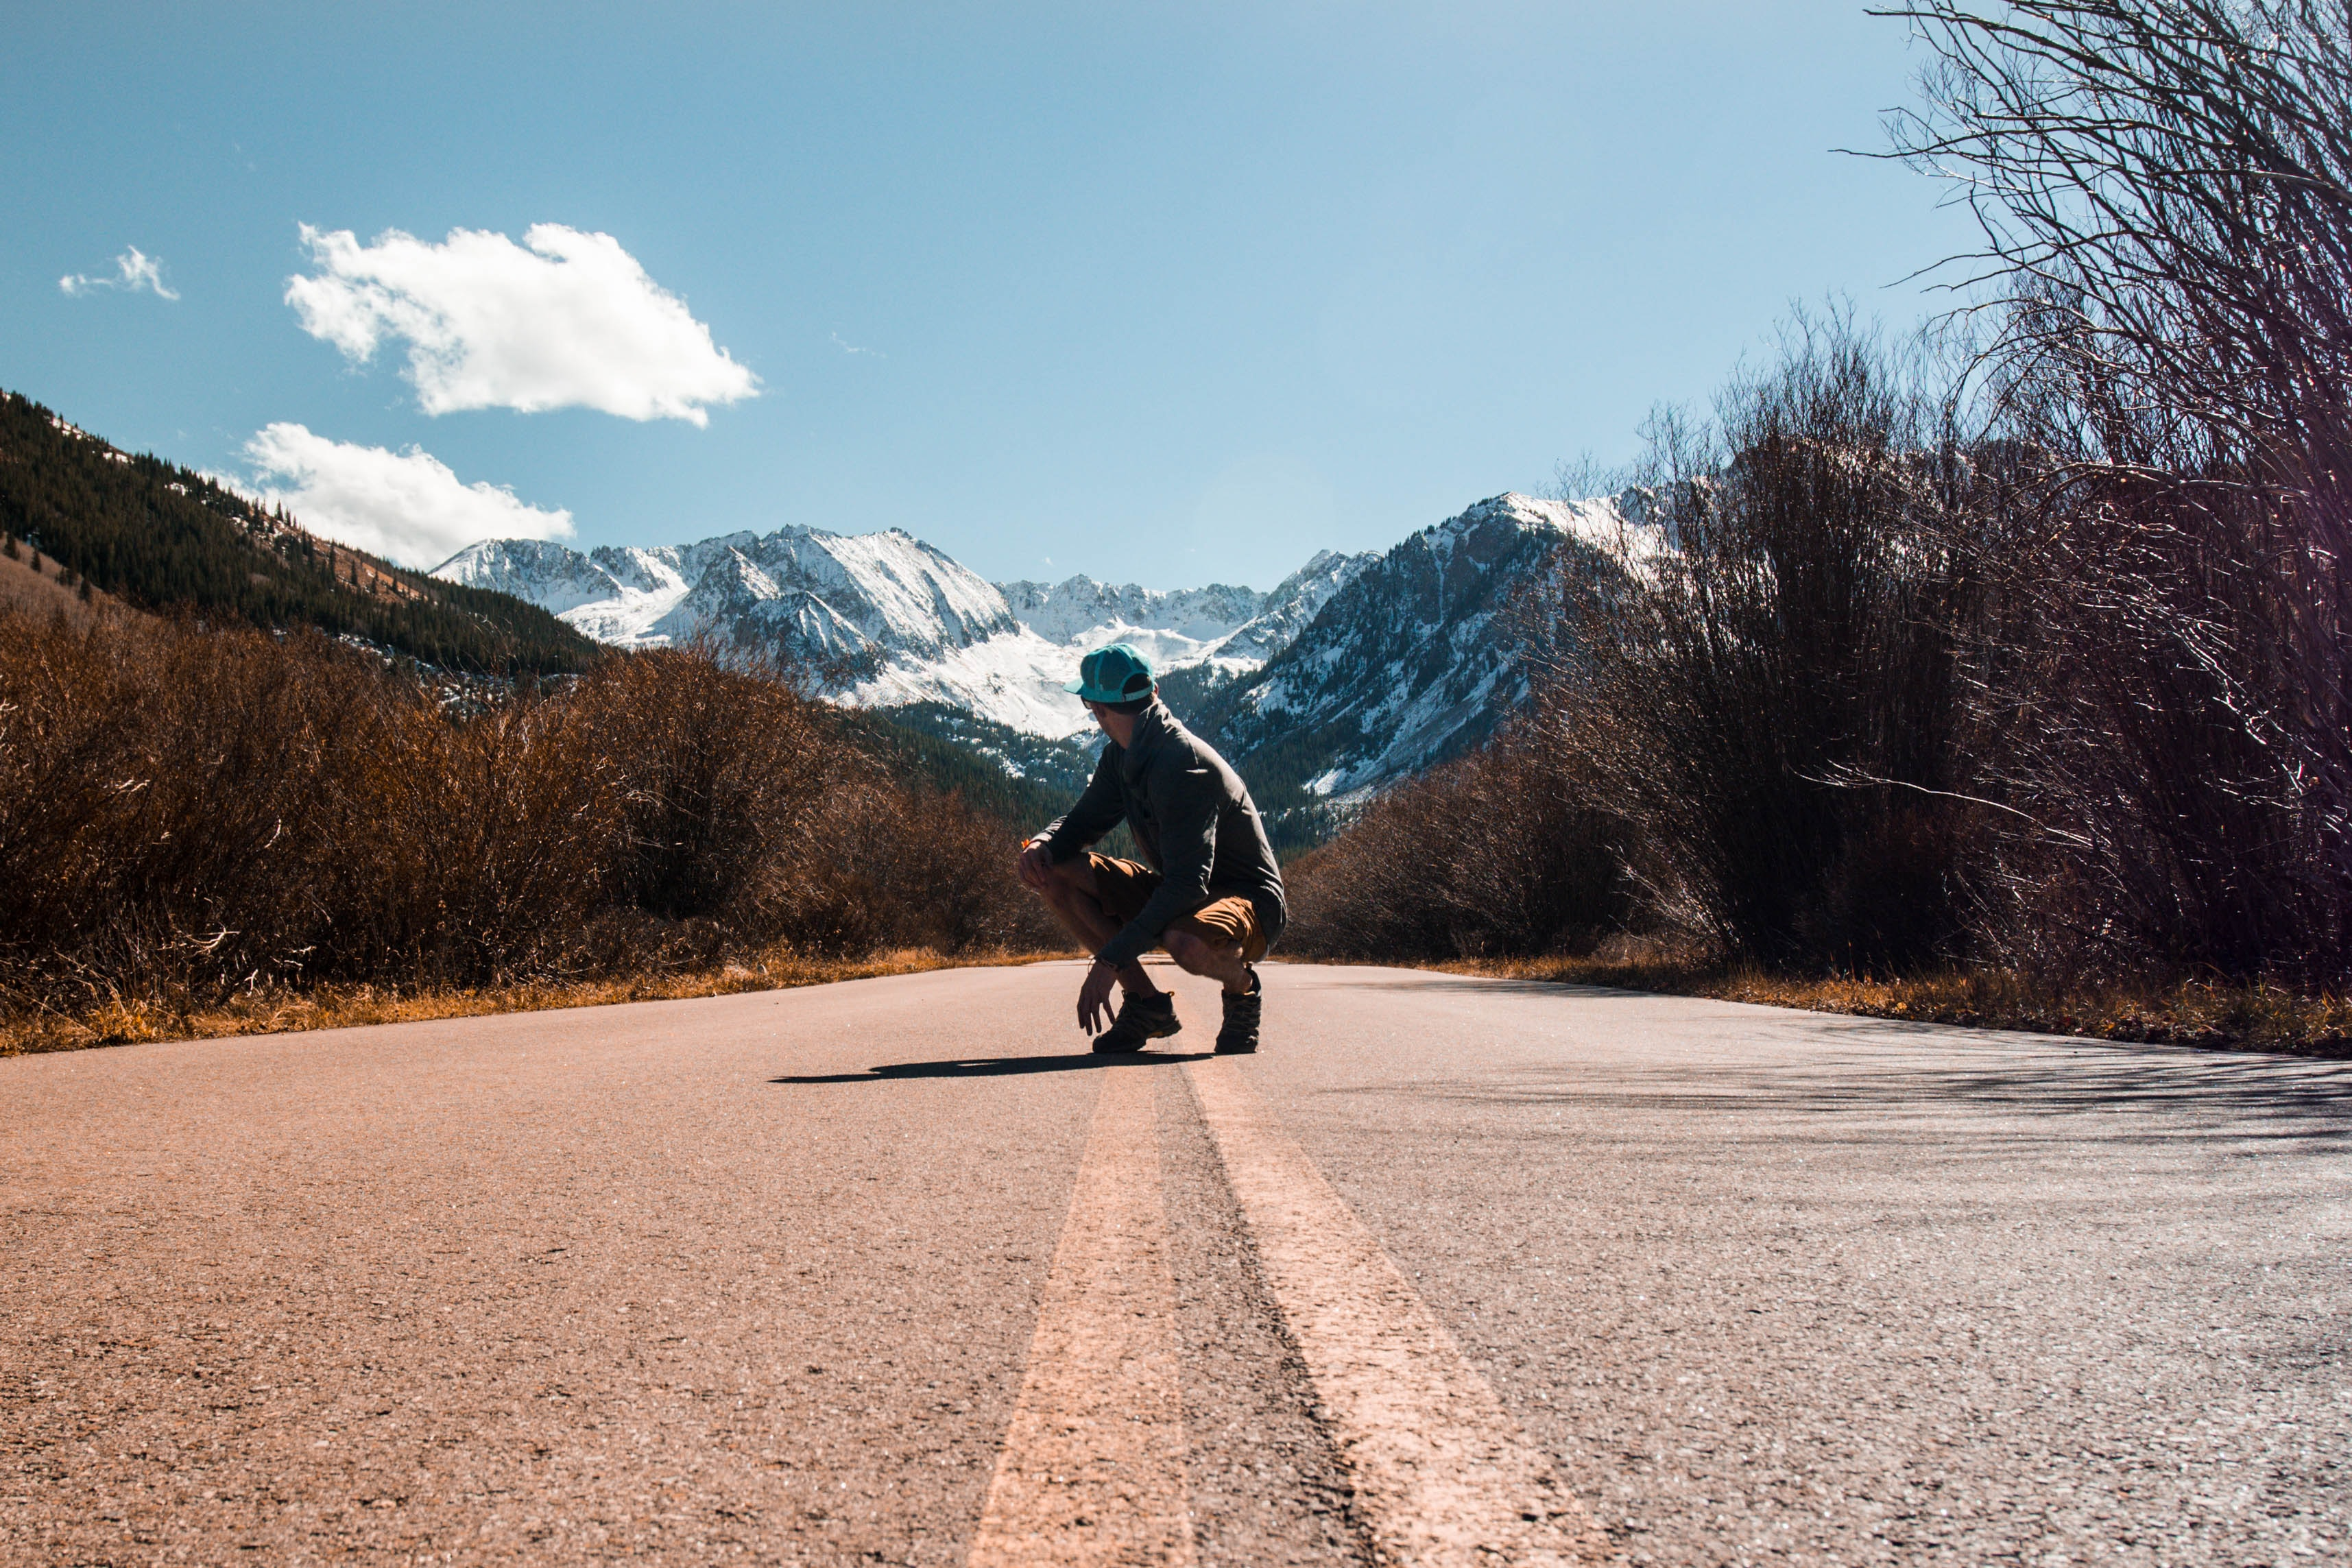 person squatting in the middle of road near snow-capped mountain at daytime